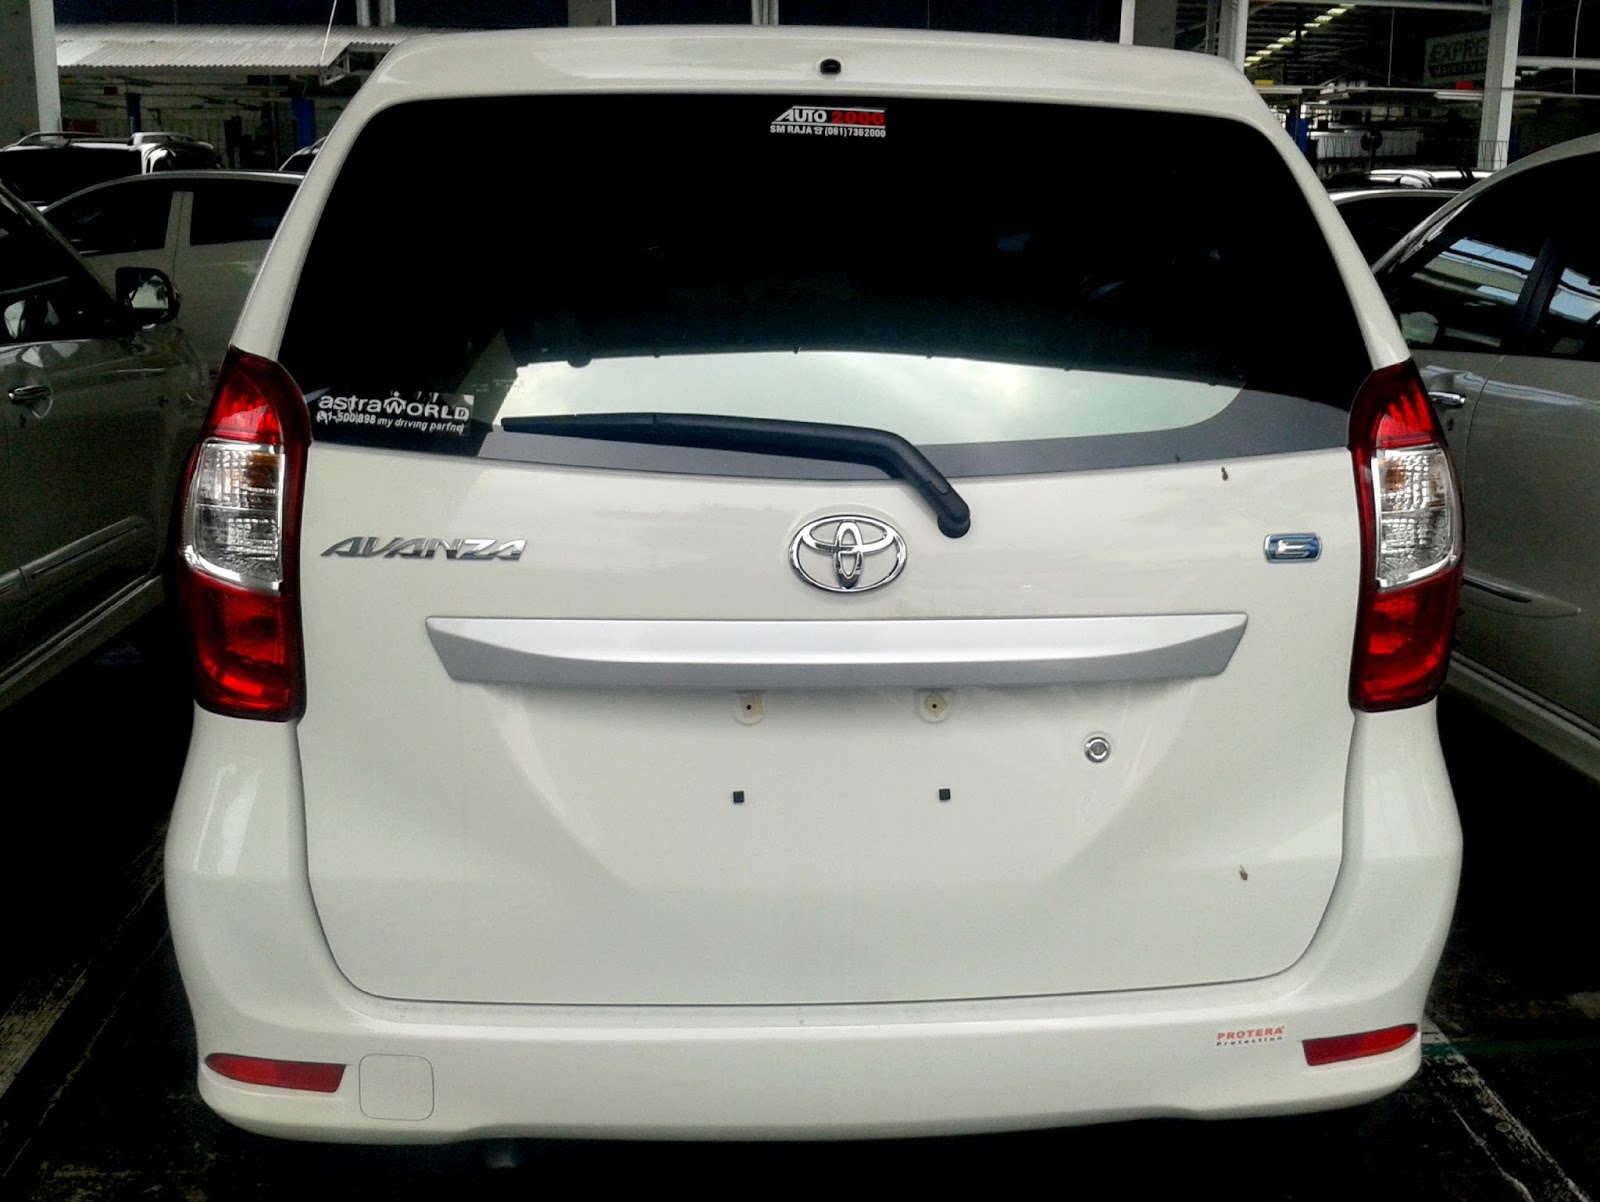 Grand New Avanza Tipe E Toyota All Kijang Innova 2.0 Q A/t Venturer 88 Modifikasi Interior 2018 Mobil Dapurpacu2016 Type Images